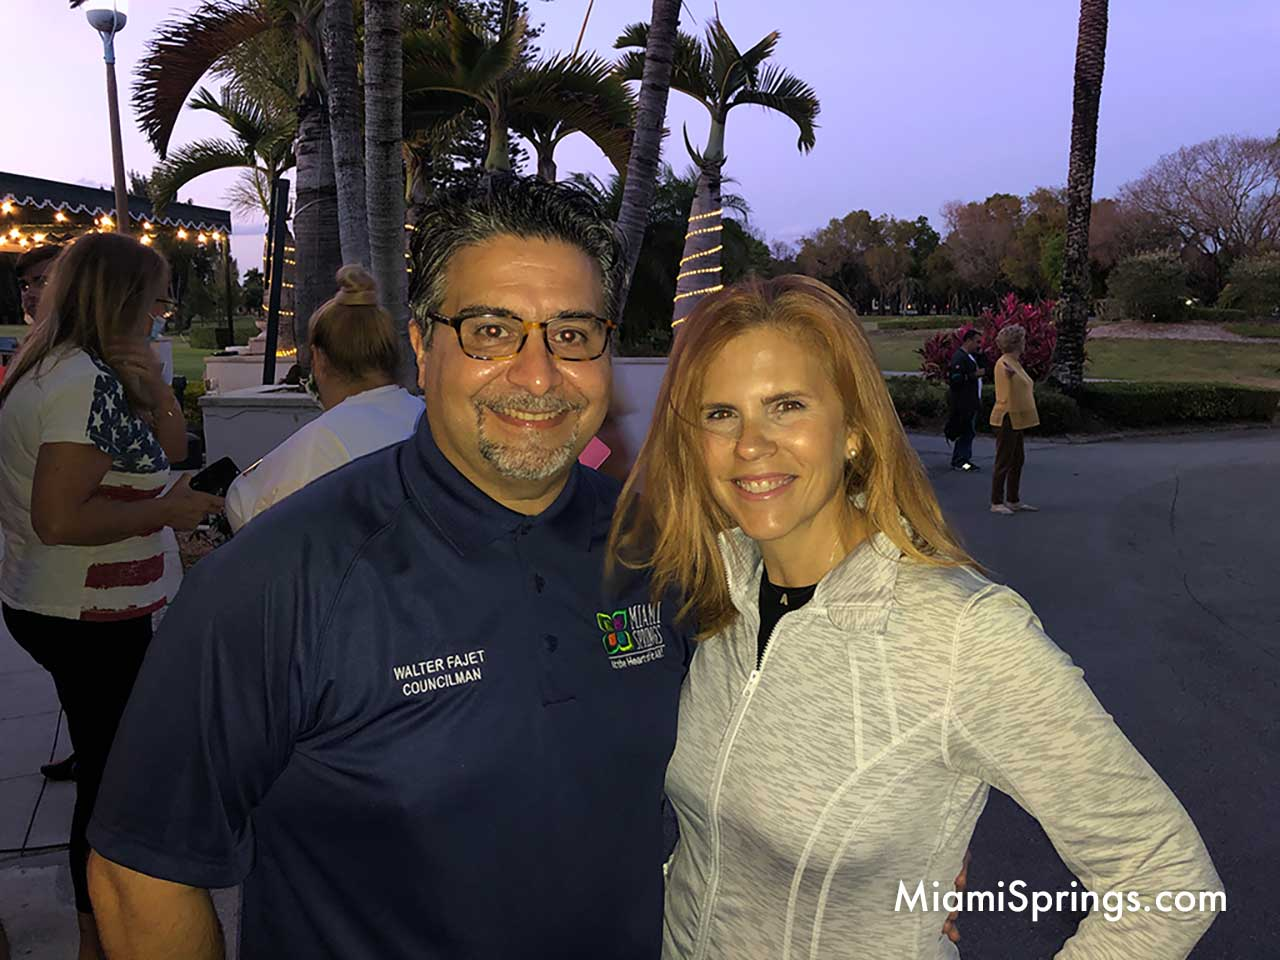 Councilman Dr. Walter Fajet with his wife.